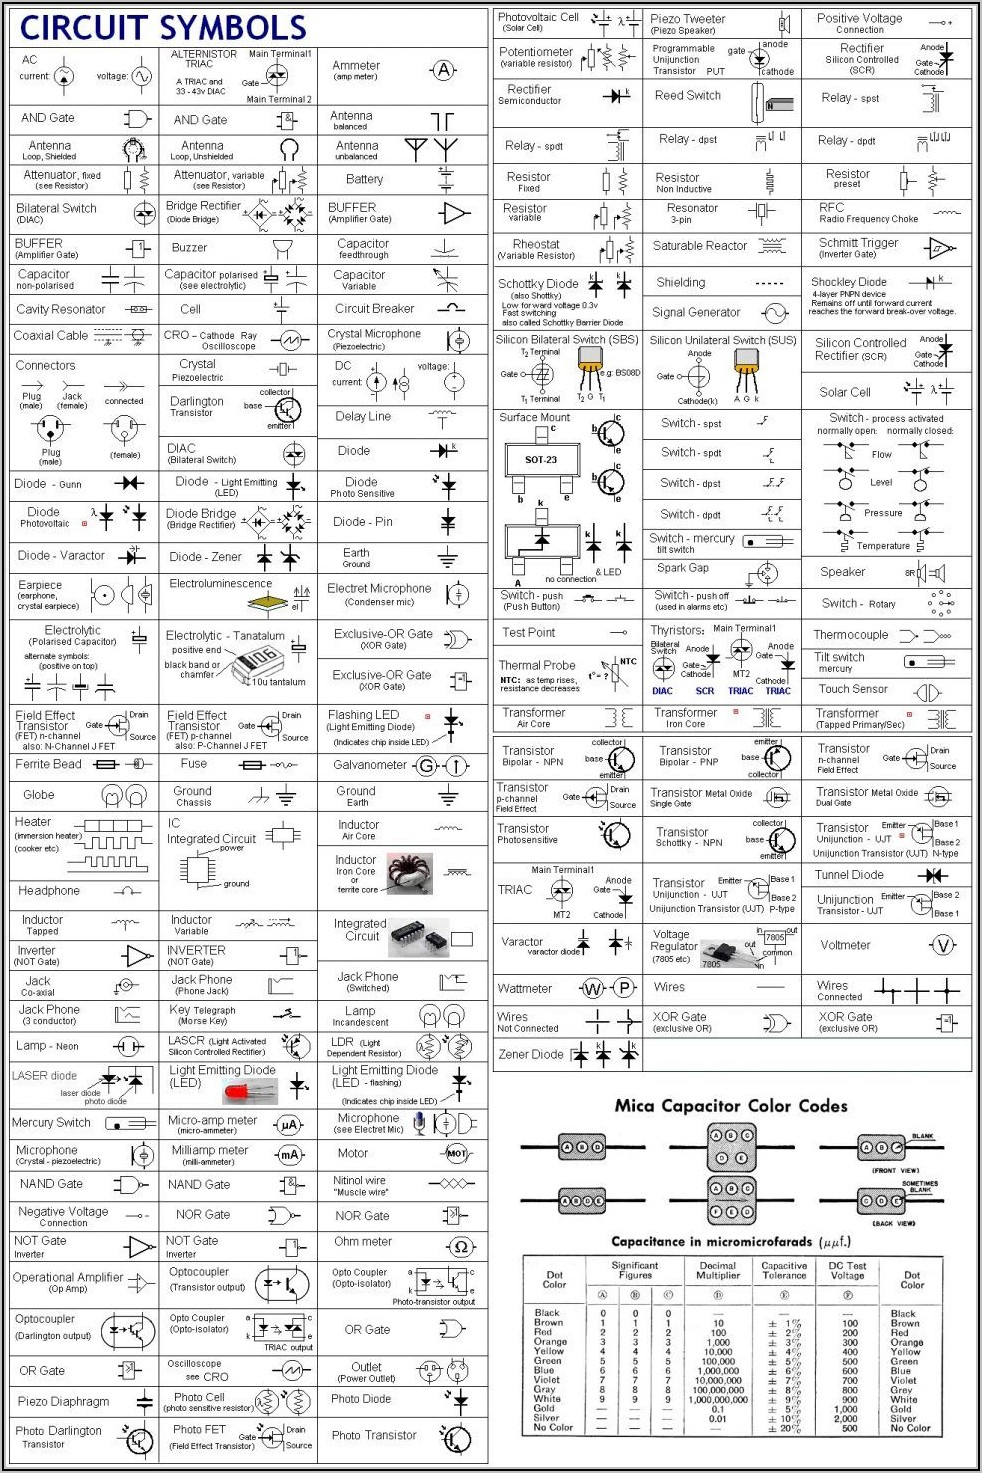 Wiring Diagram Symbols And Meanings